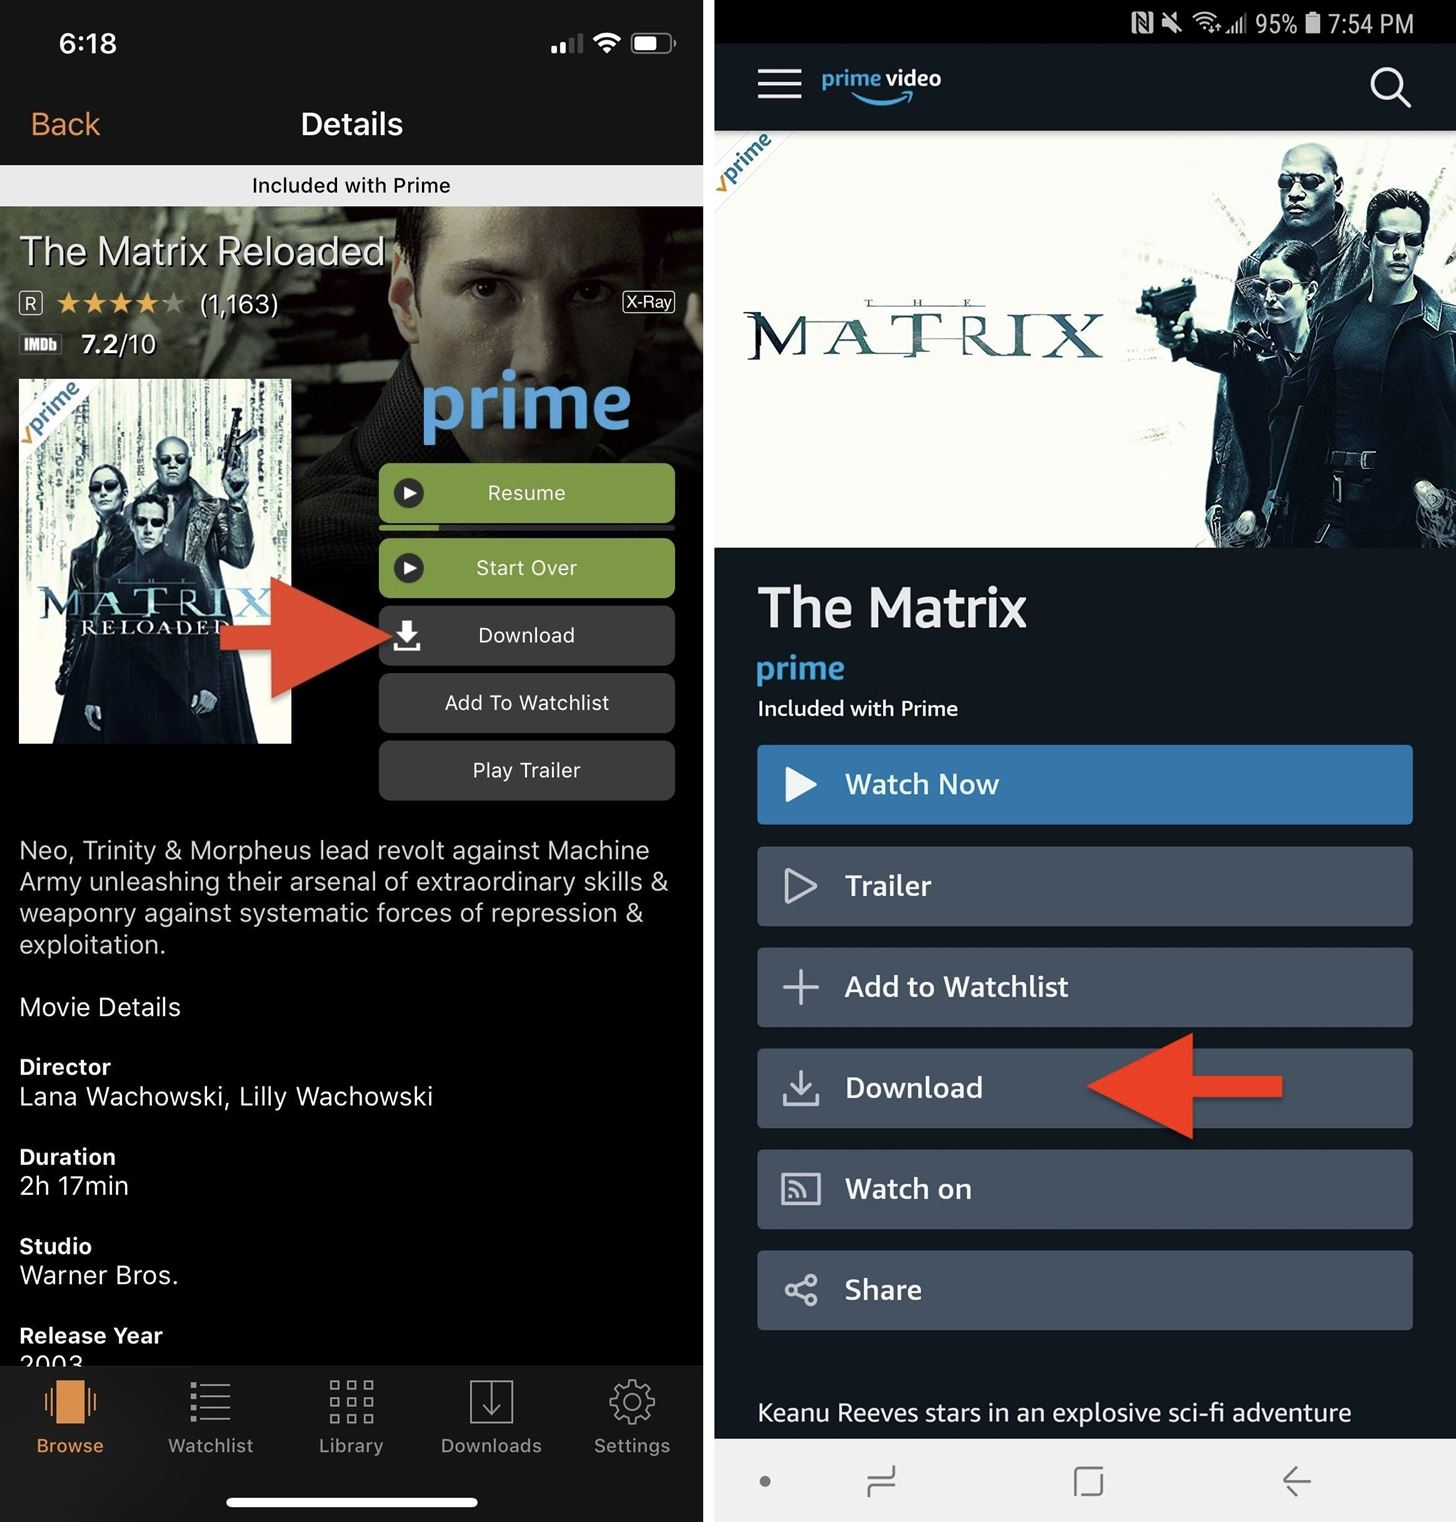 Download movies for offline viewing android | How to